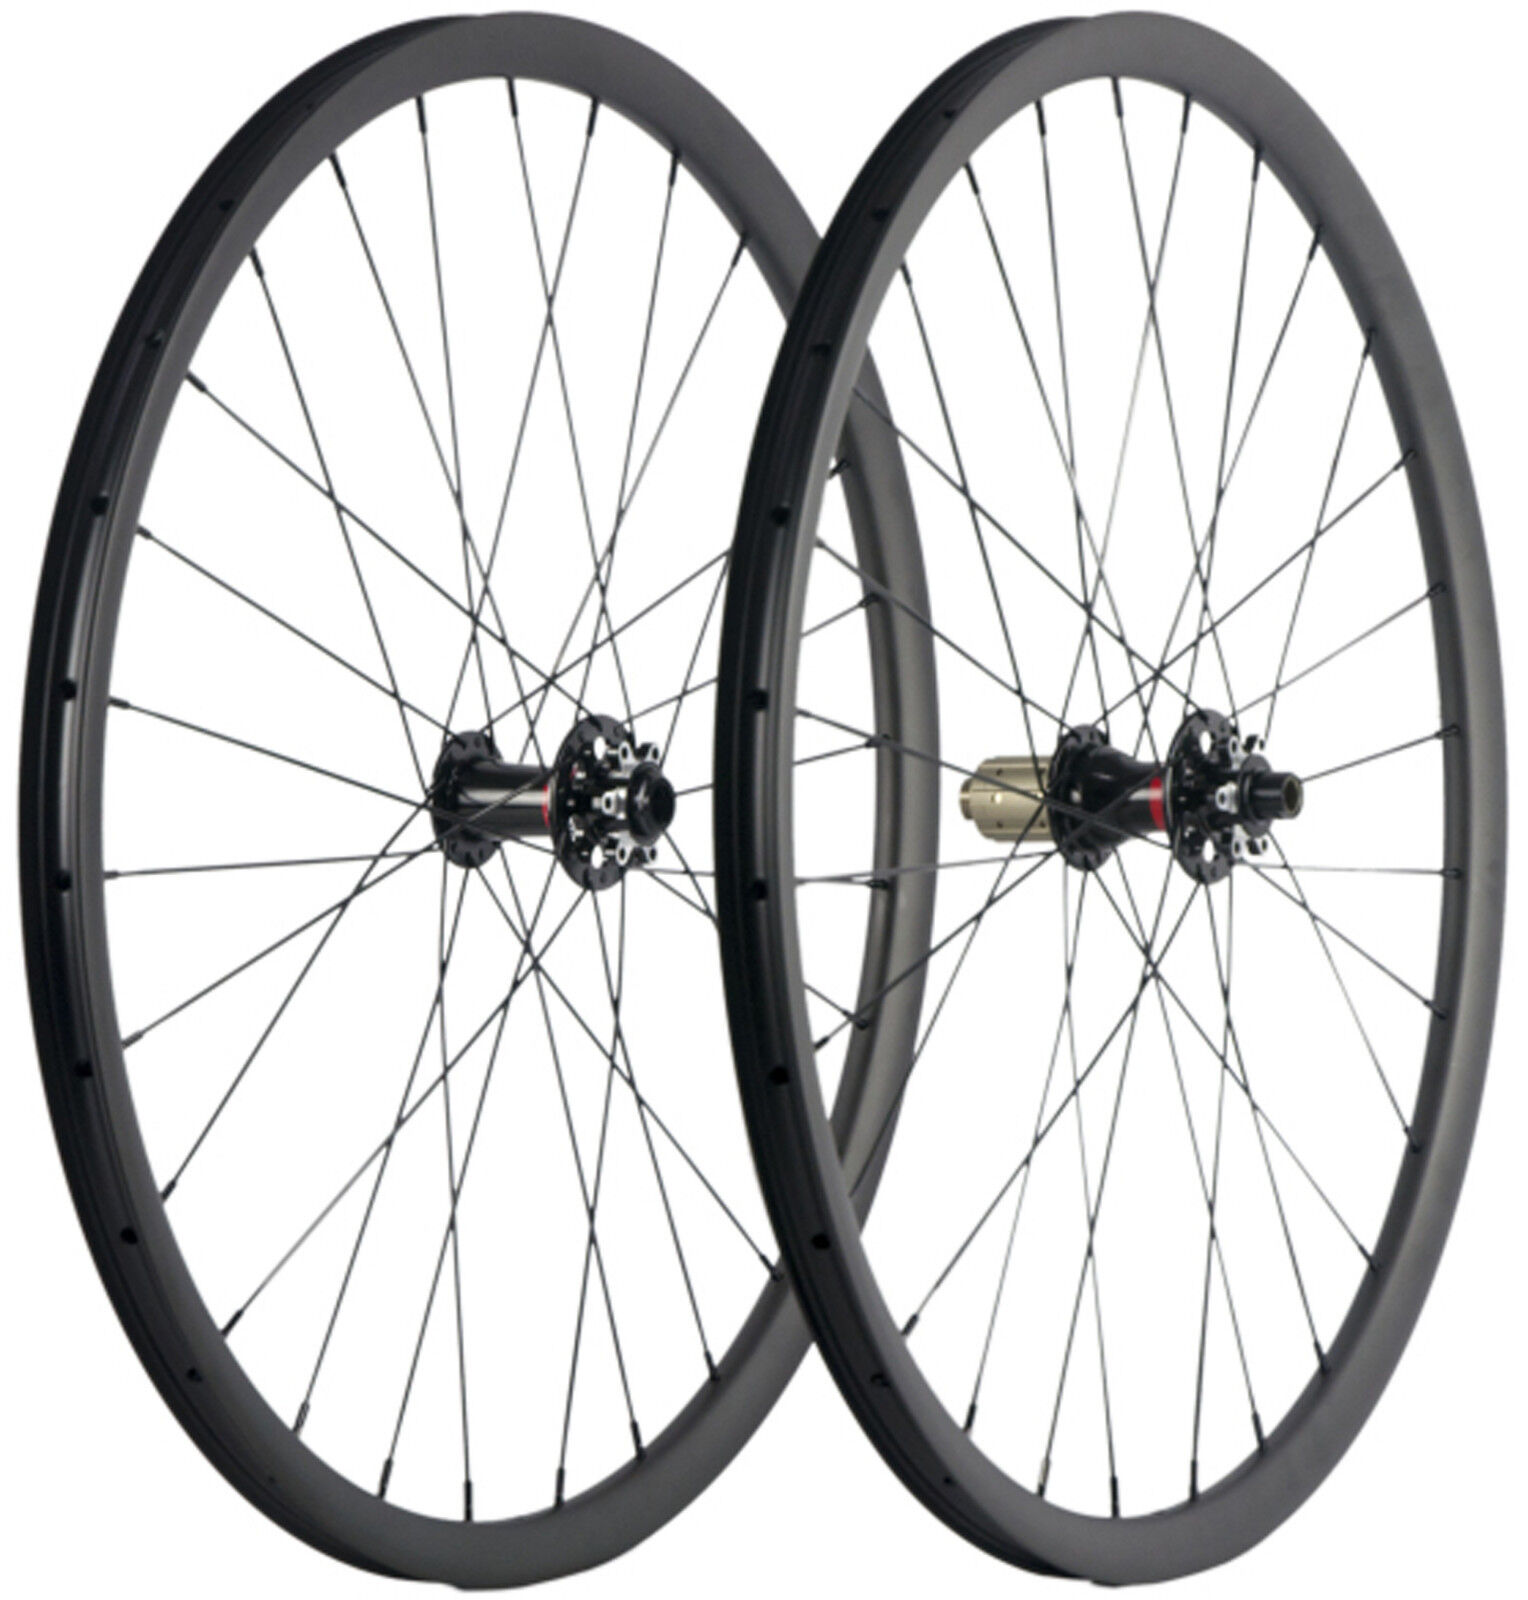 29ER Carbon Wheels MTB Wheelset 30mm Width Tubeless Mountain Bike Sram Sram XD